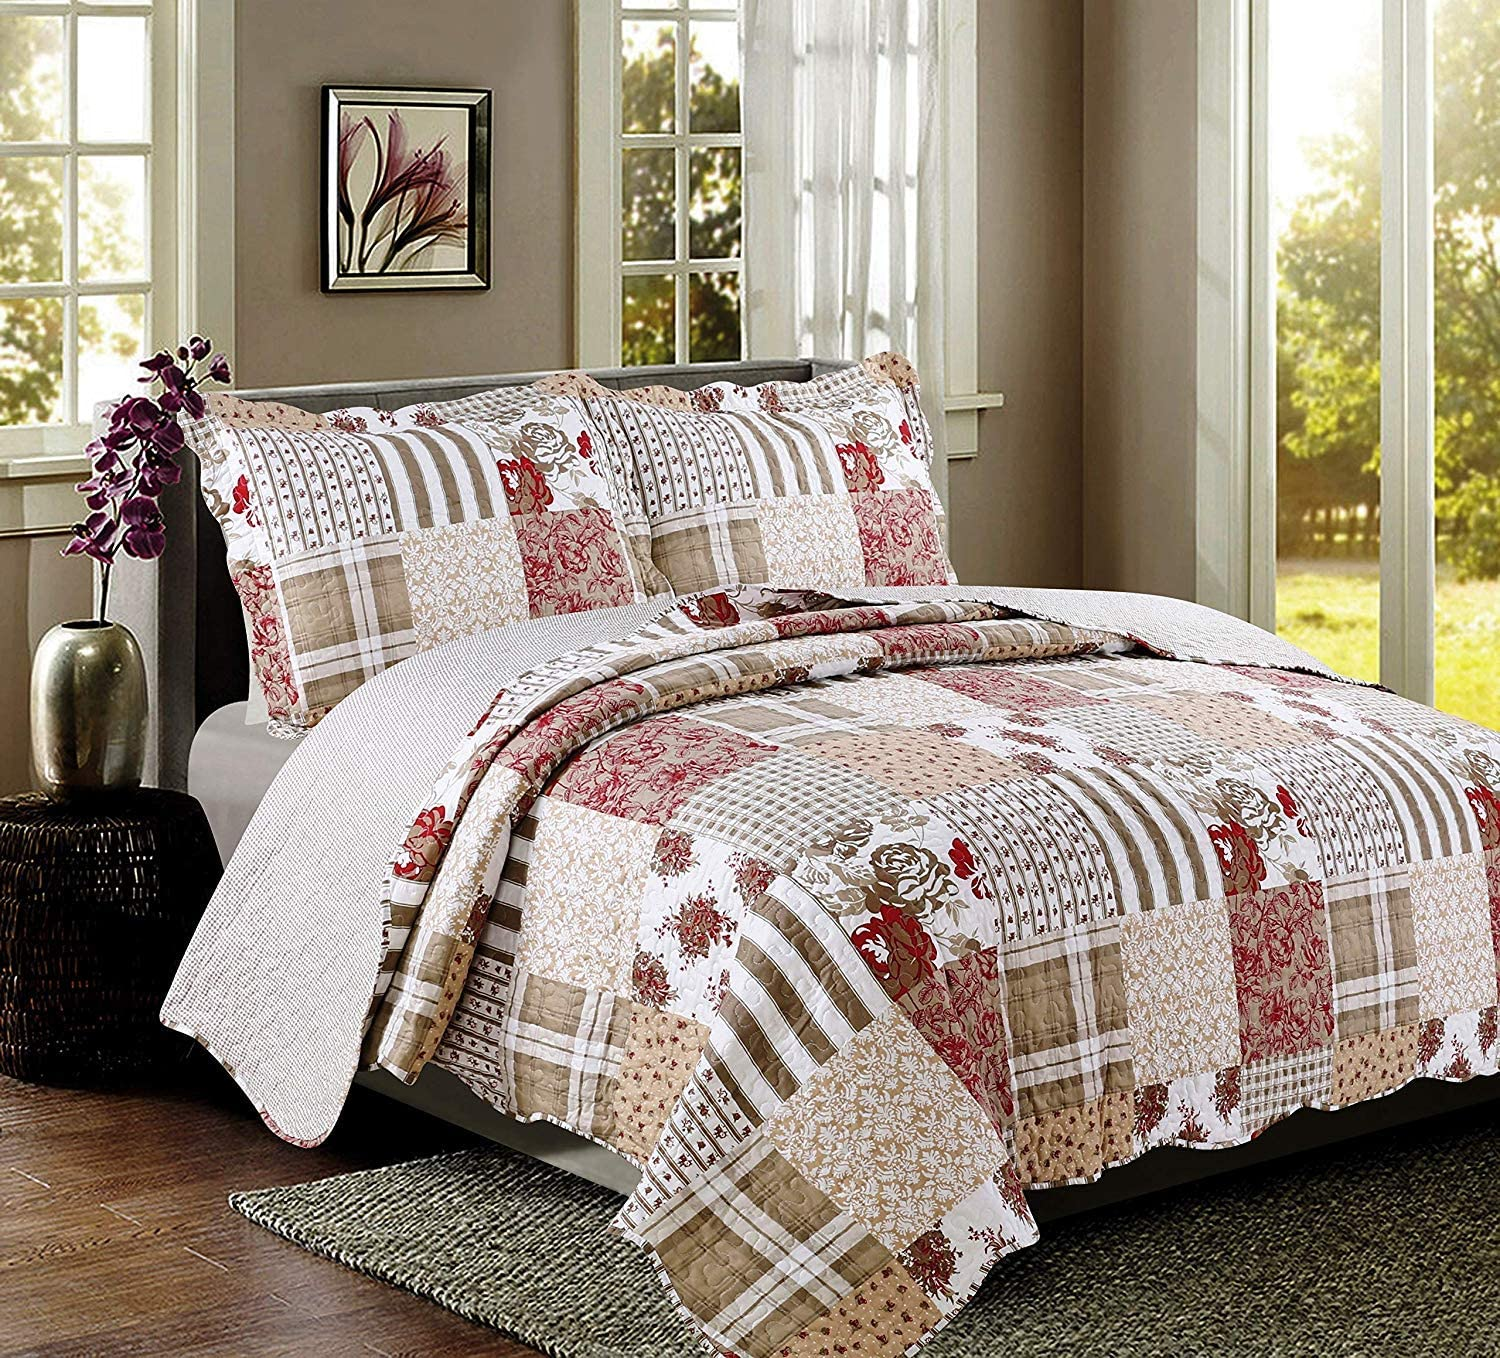 3-piece Quilt Set. Americana King, Soft Bedspread Set- Reversible Patchwork Coverlet with Shams